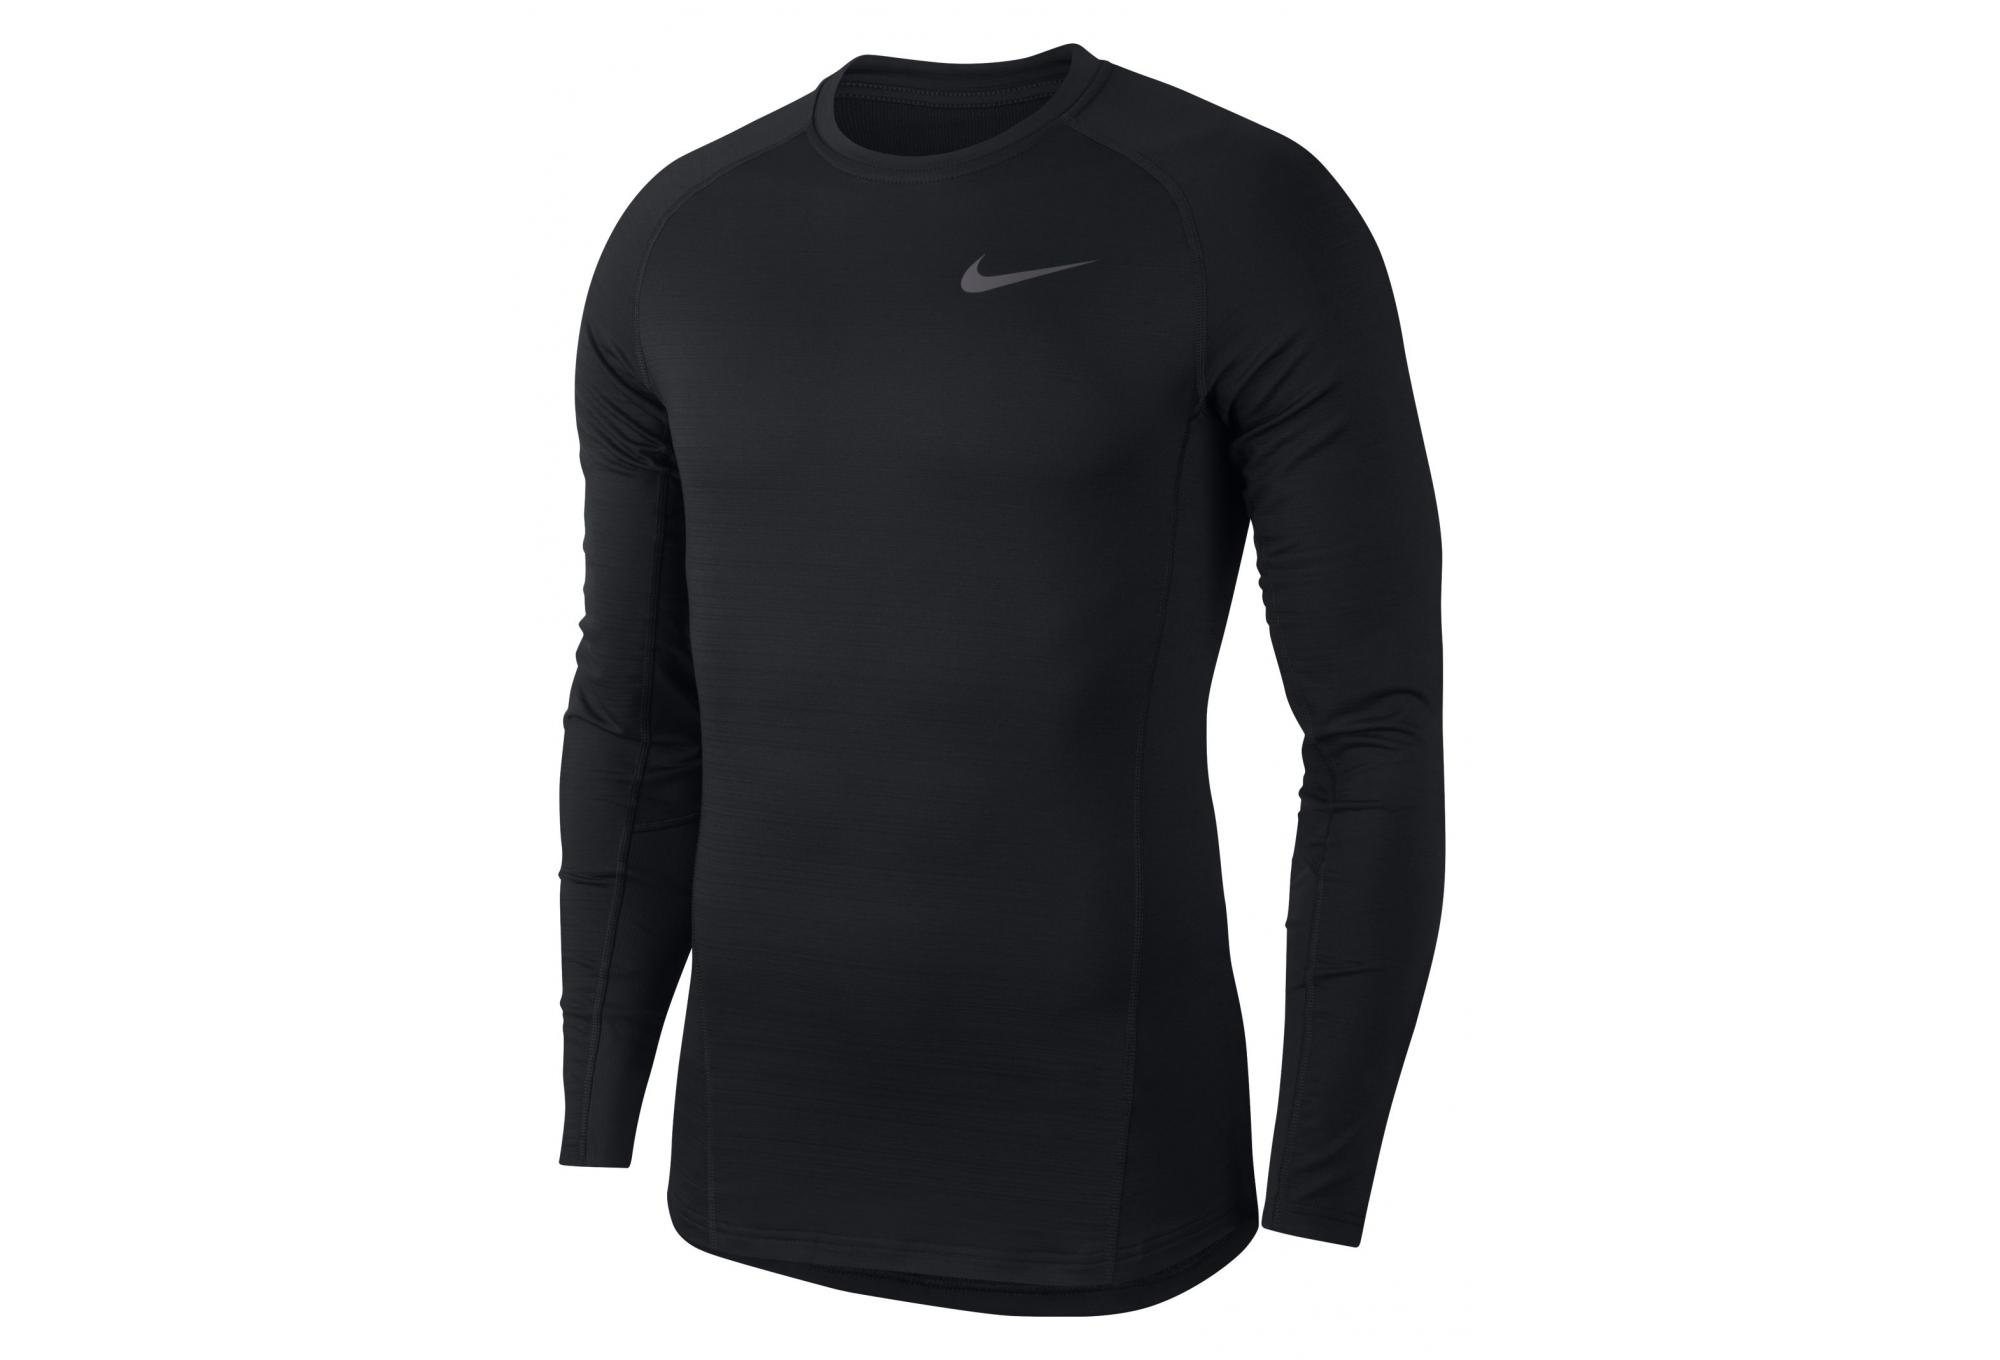 2aebe9a1 Nike Pro Warm Thermal Long Sleeves Jersey Black | Alltricks.com